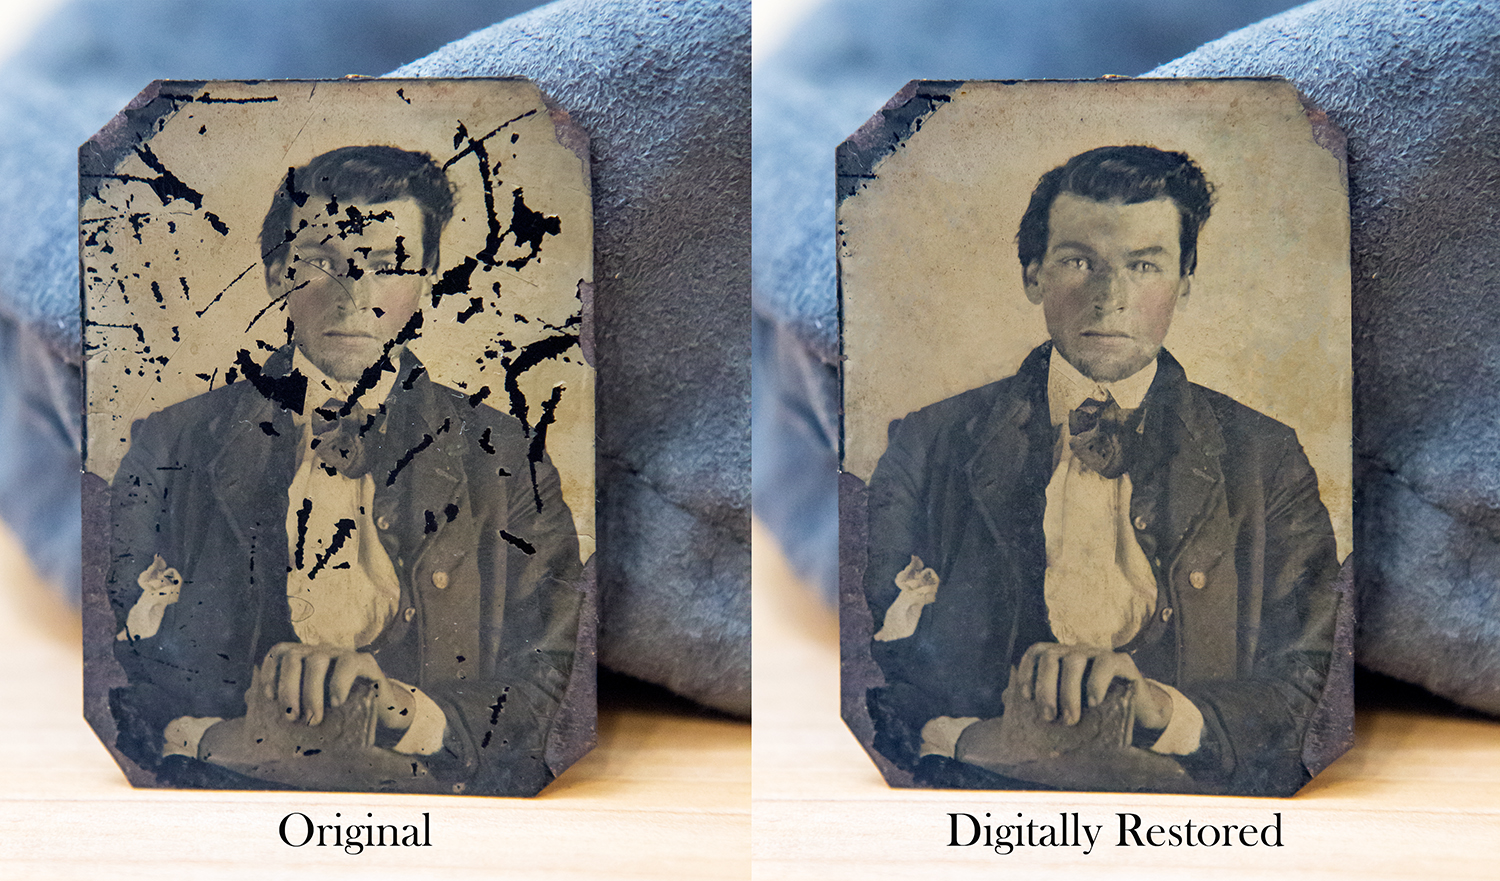 Digital restoration of an historic tintype